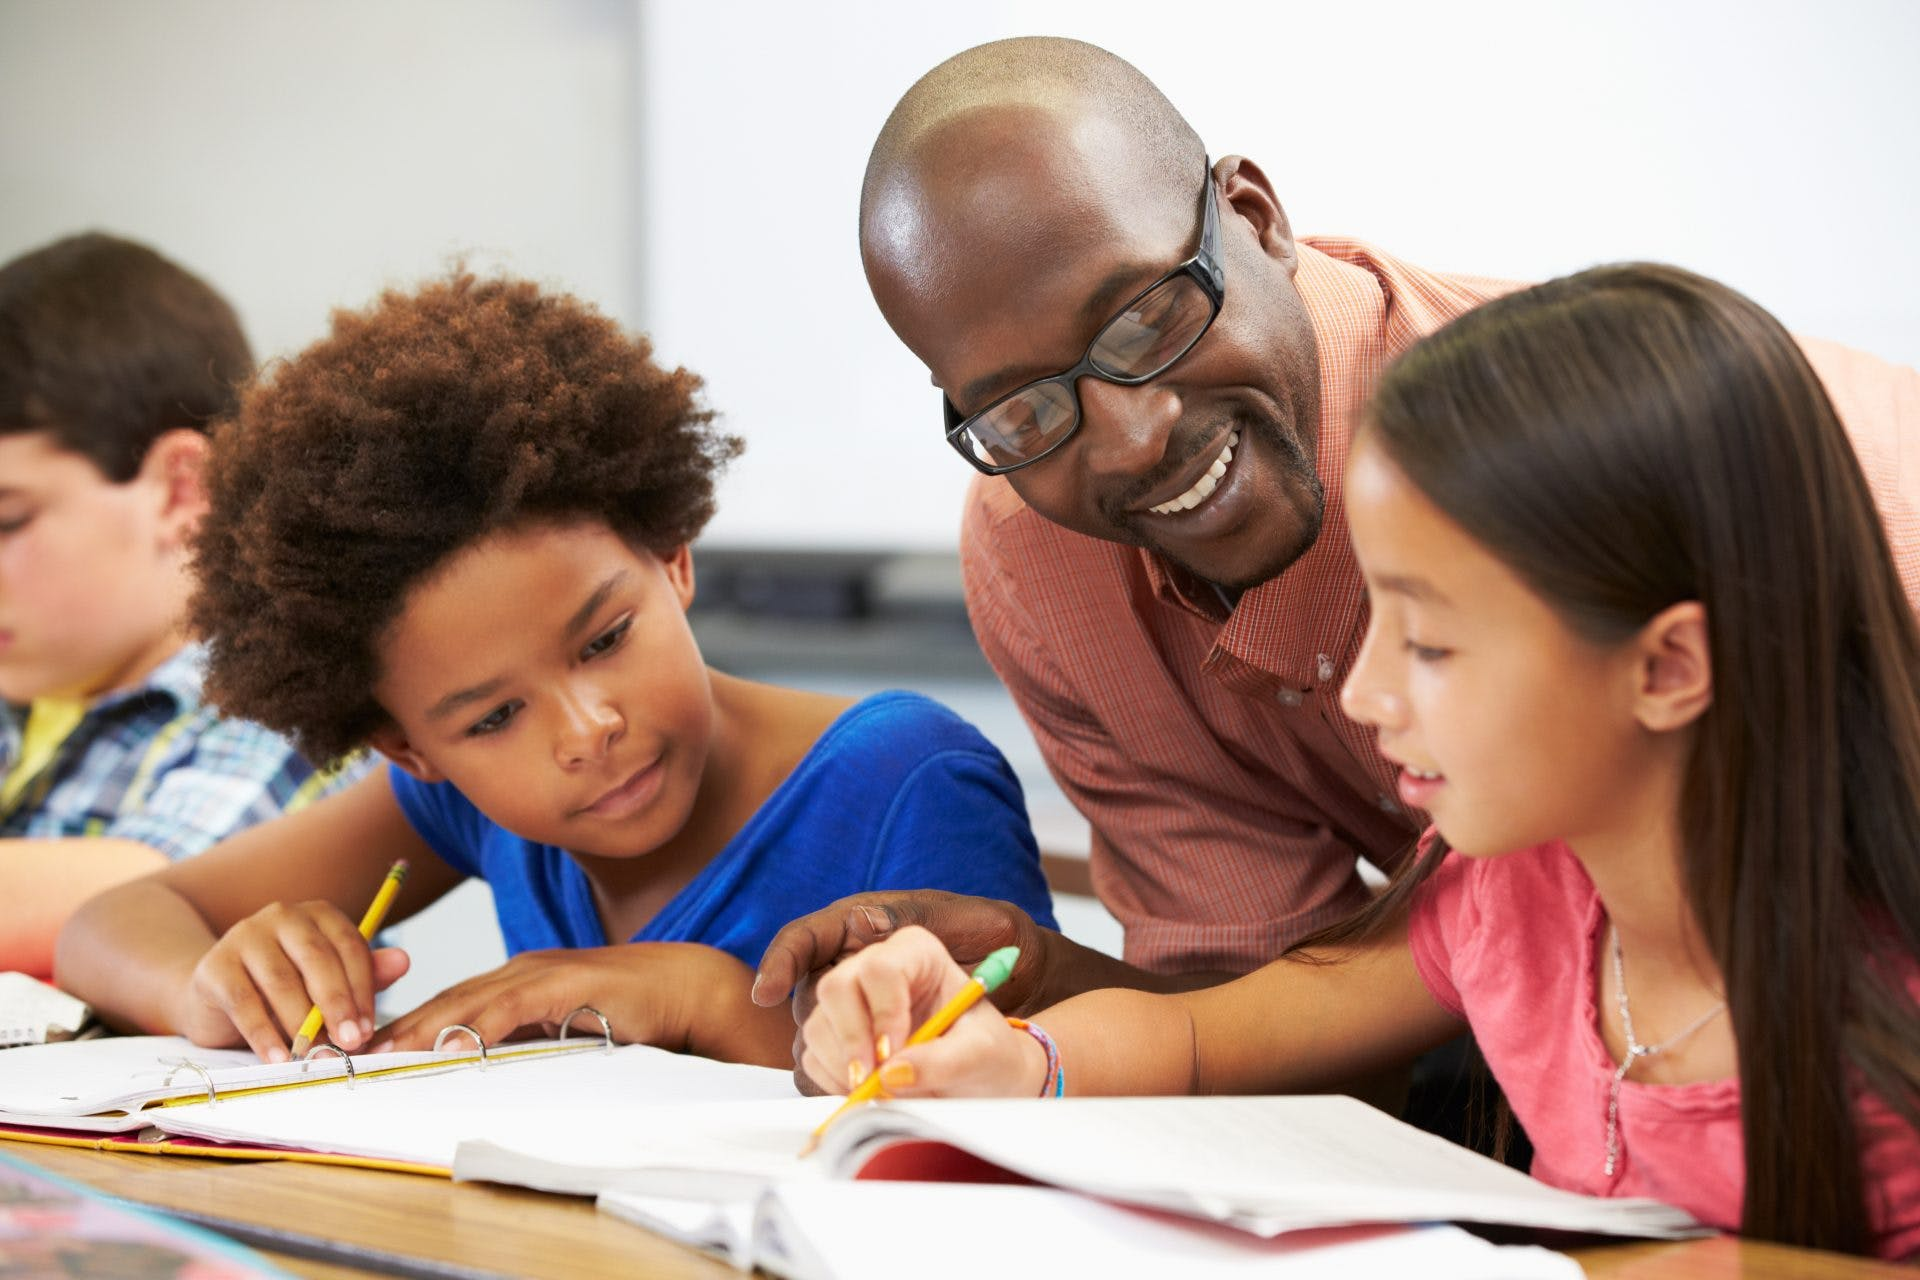 A male presenting teacher helping two children with school work.